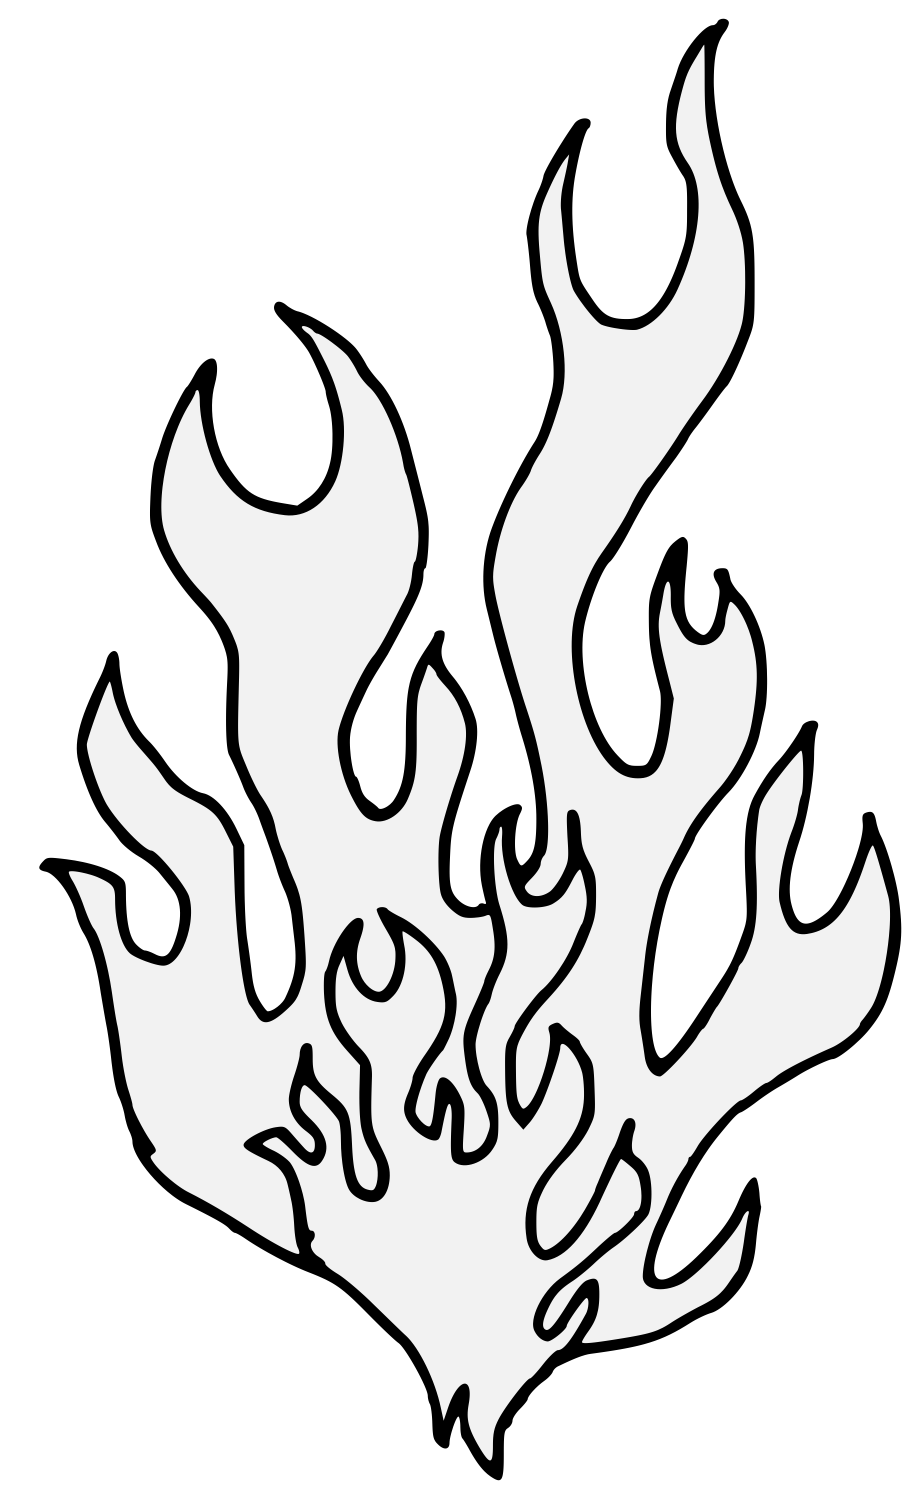 Flames Outline Drawing | Free download best Flames Outline